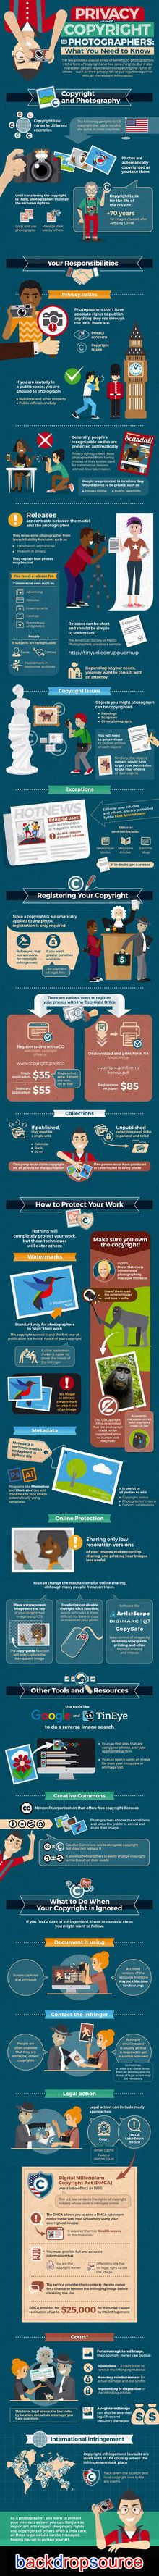 Photography Backdrops - INFOGRAPHICS